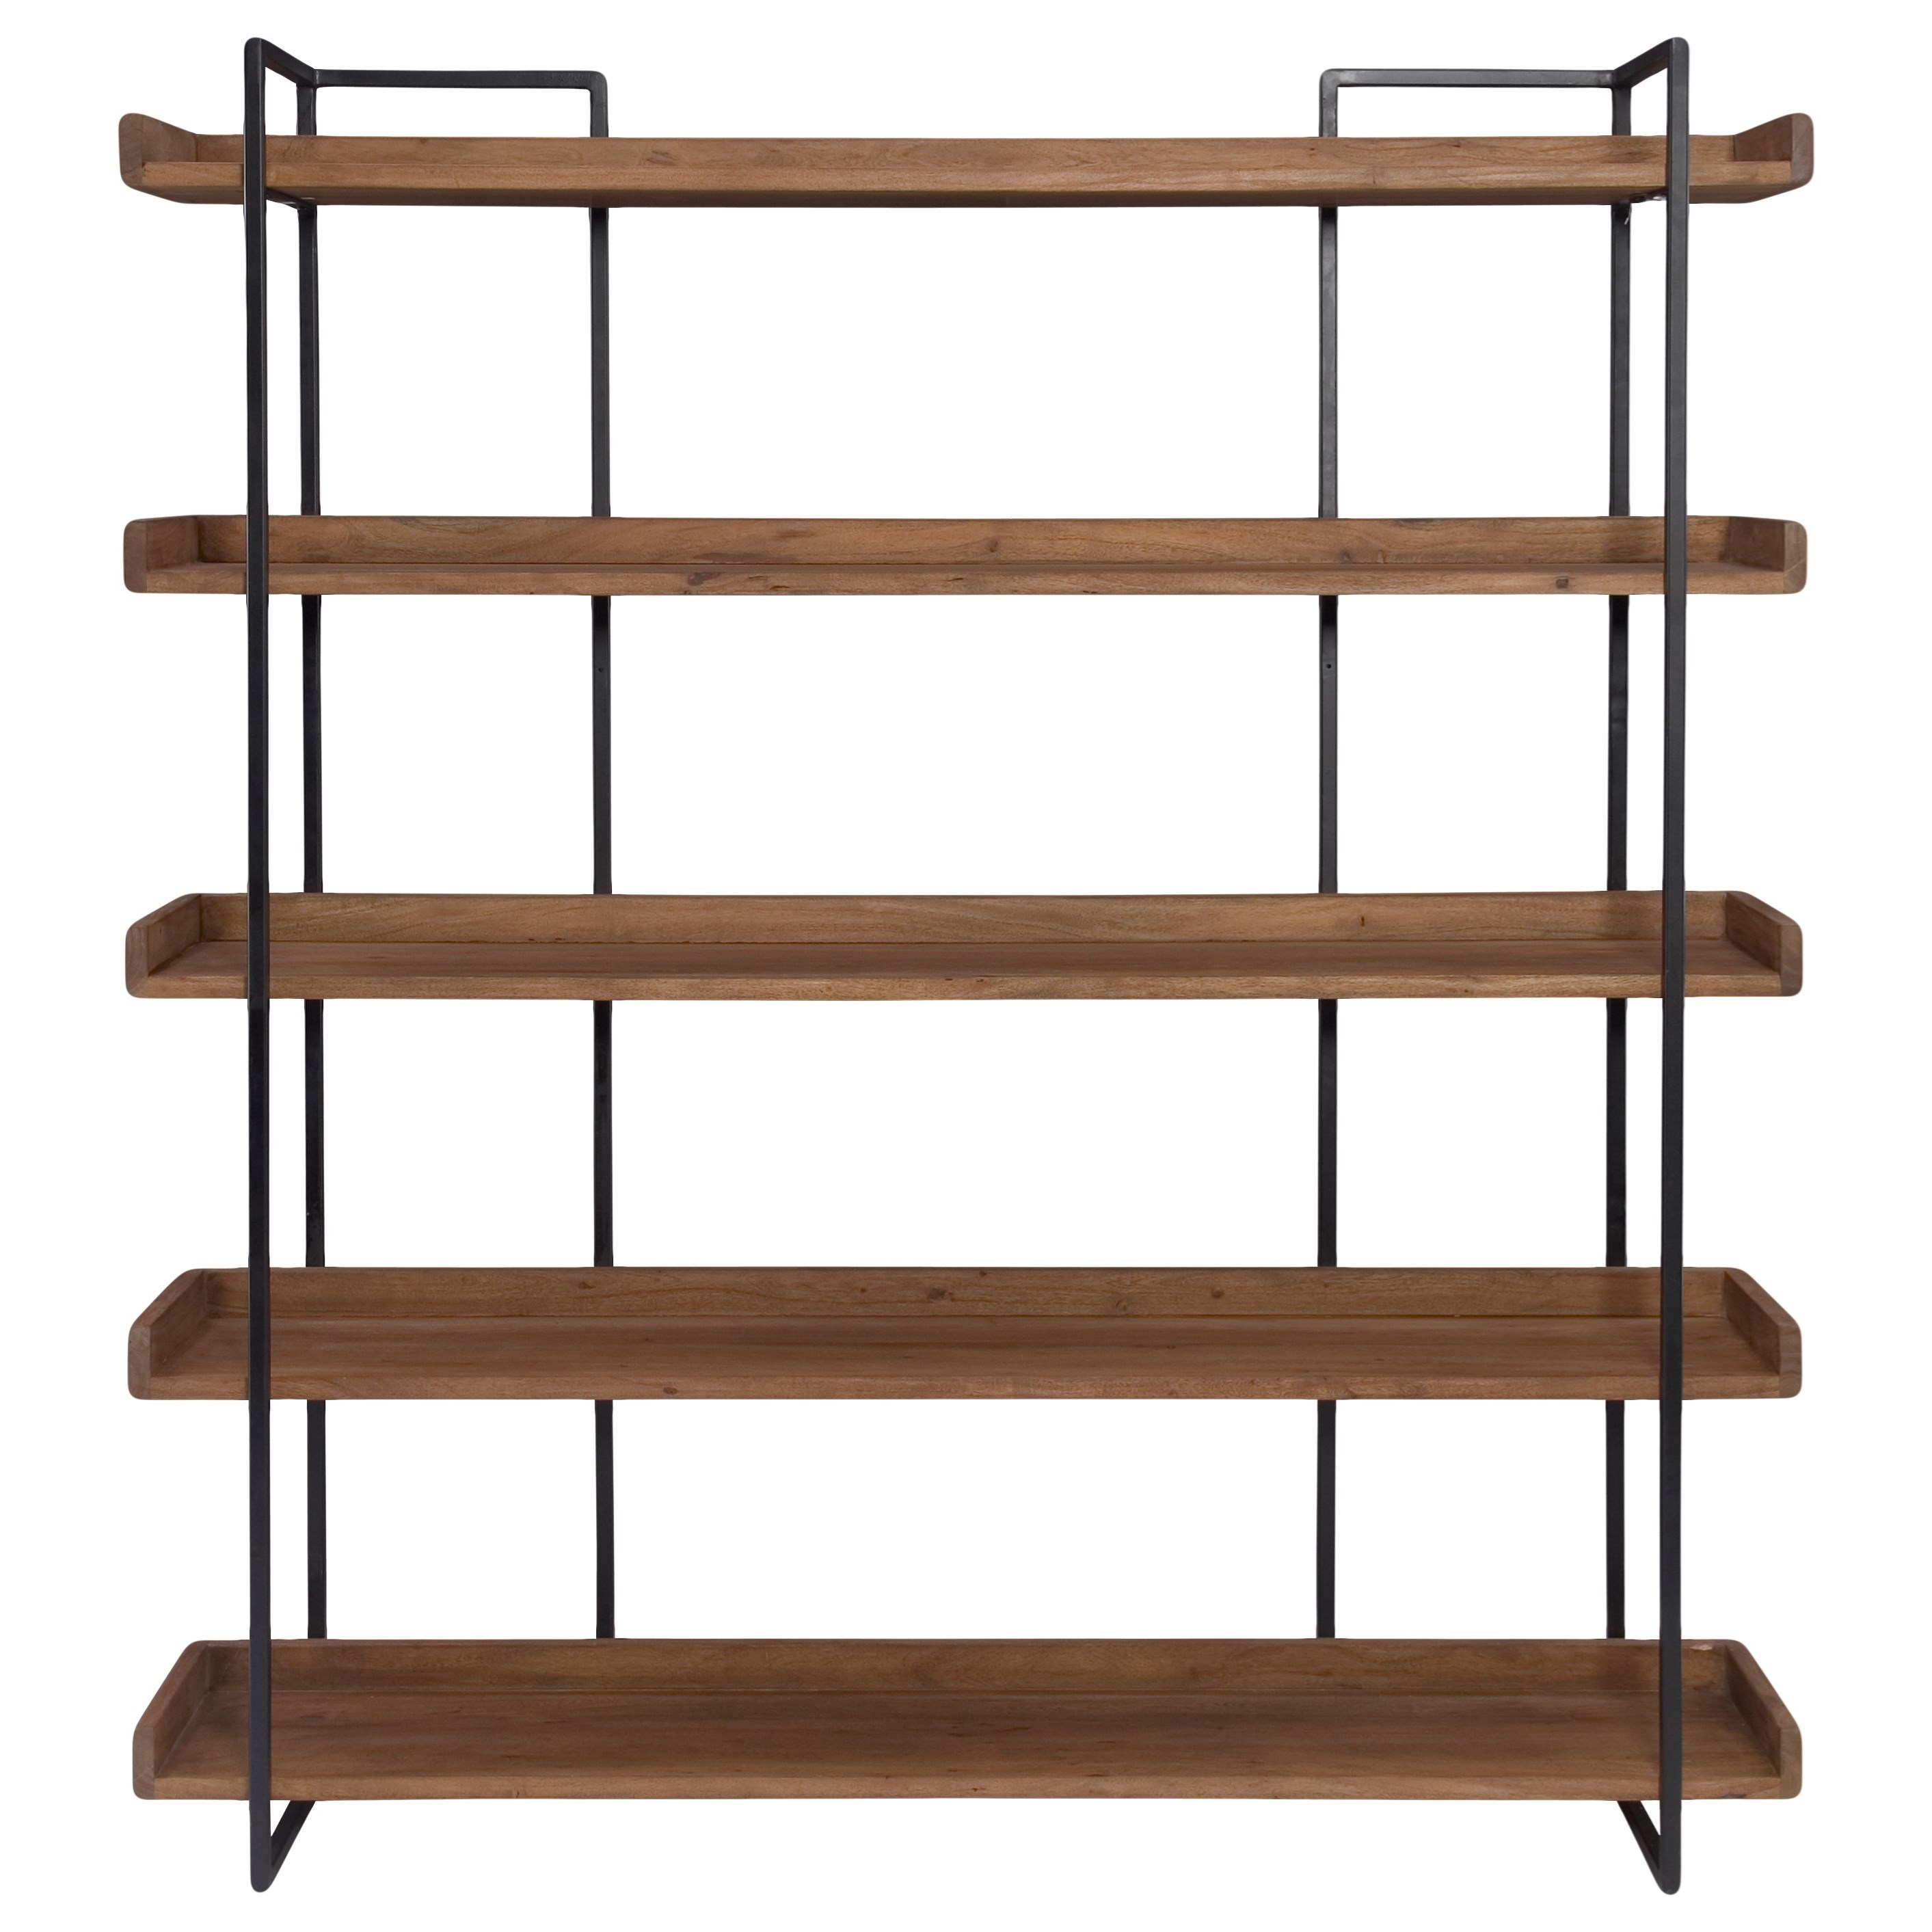 Vancouver Large Bookshelf by Moe's Home Collection at Stoney Creek Furniture